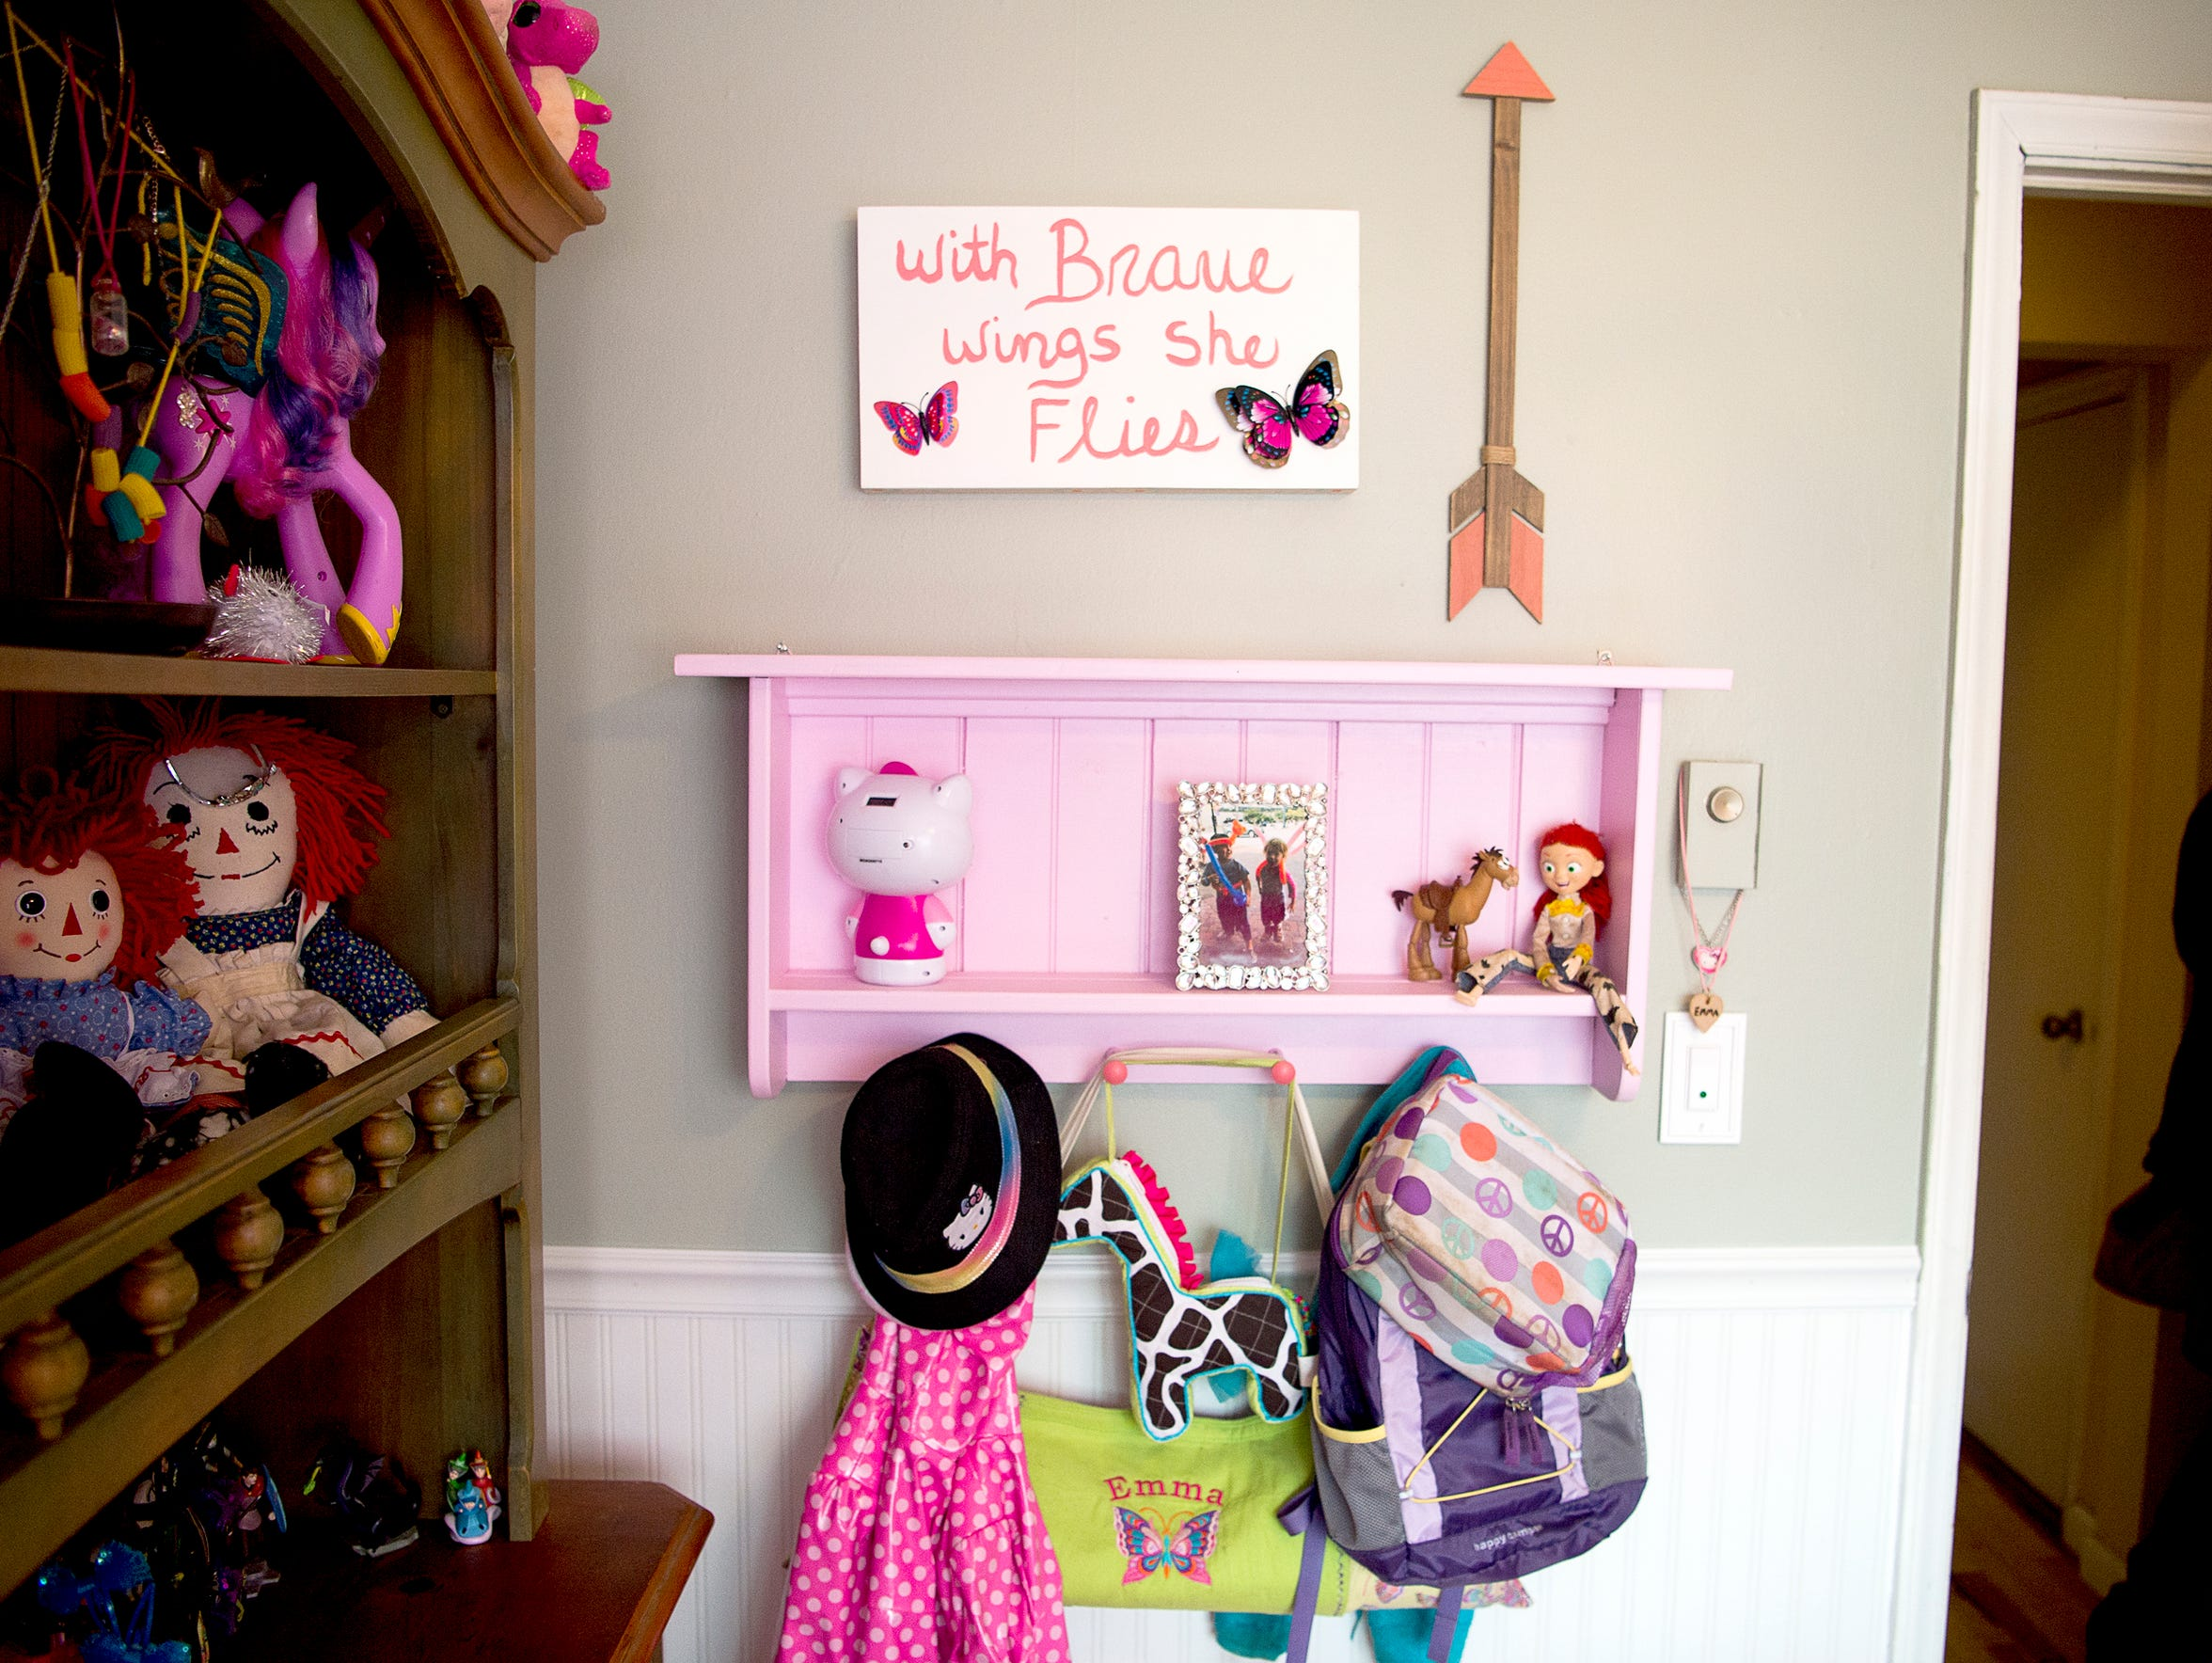 Toys and other belongings on a wall in Emma's bedroom.